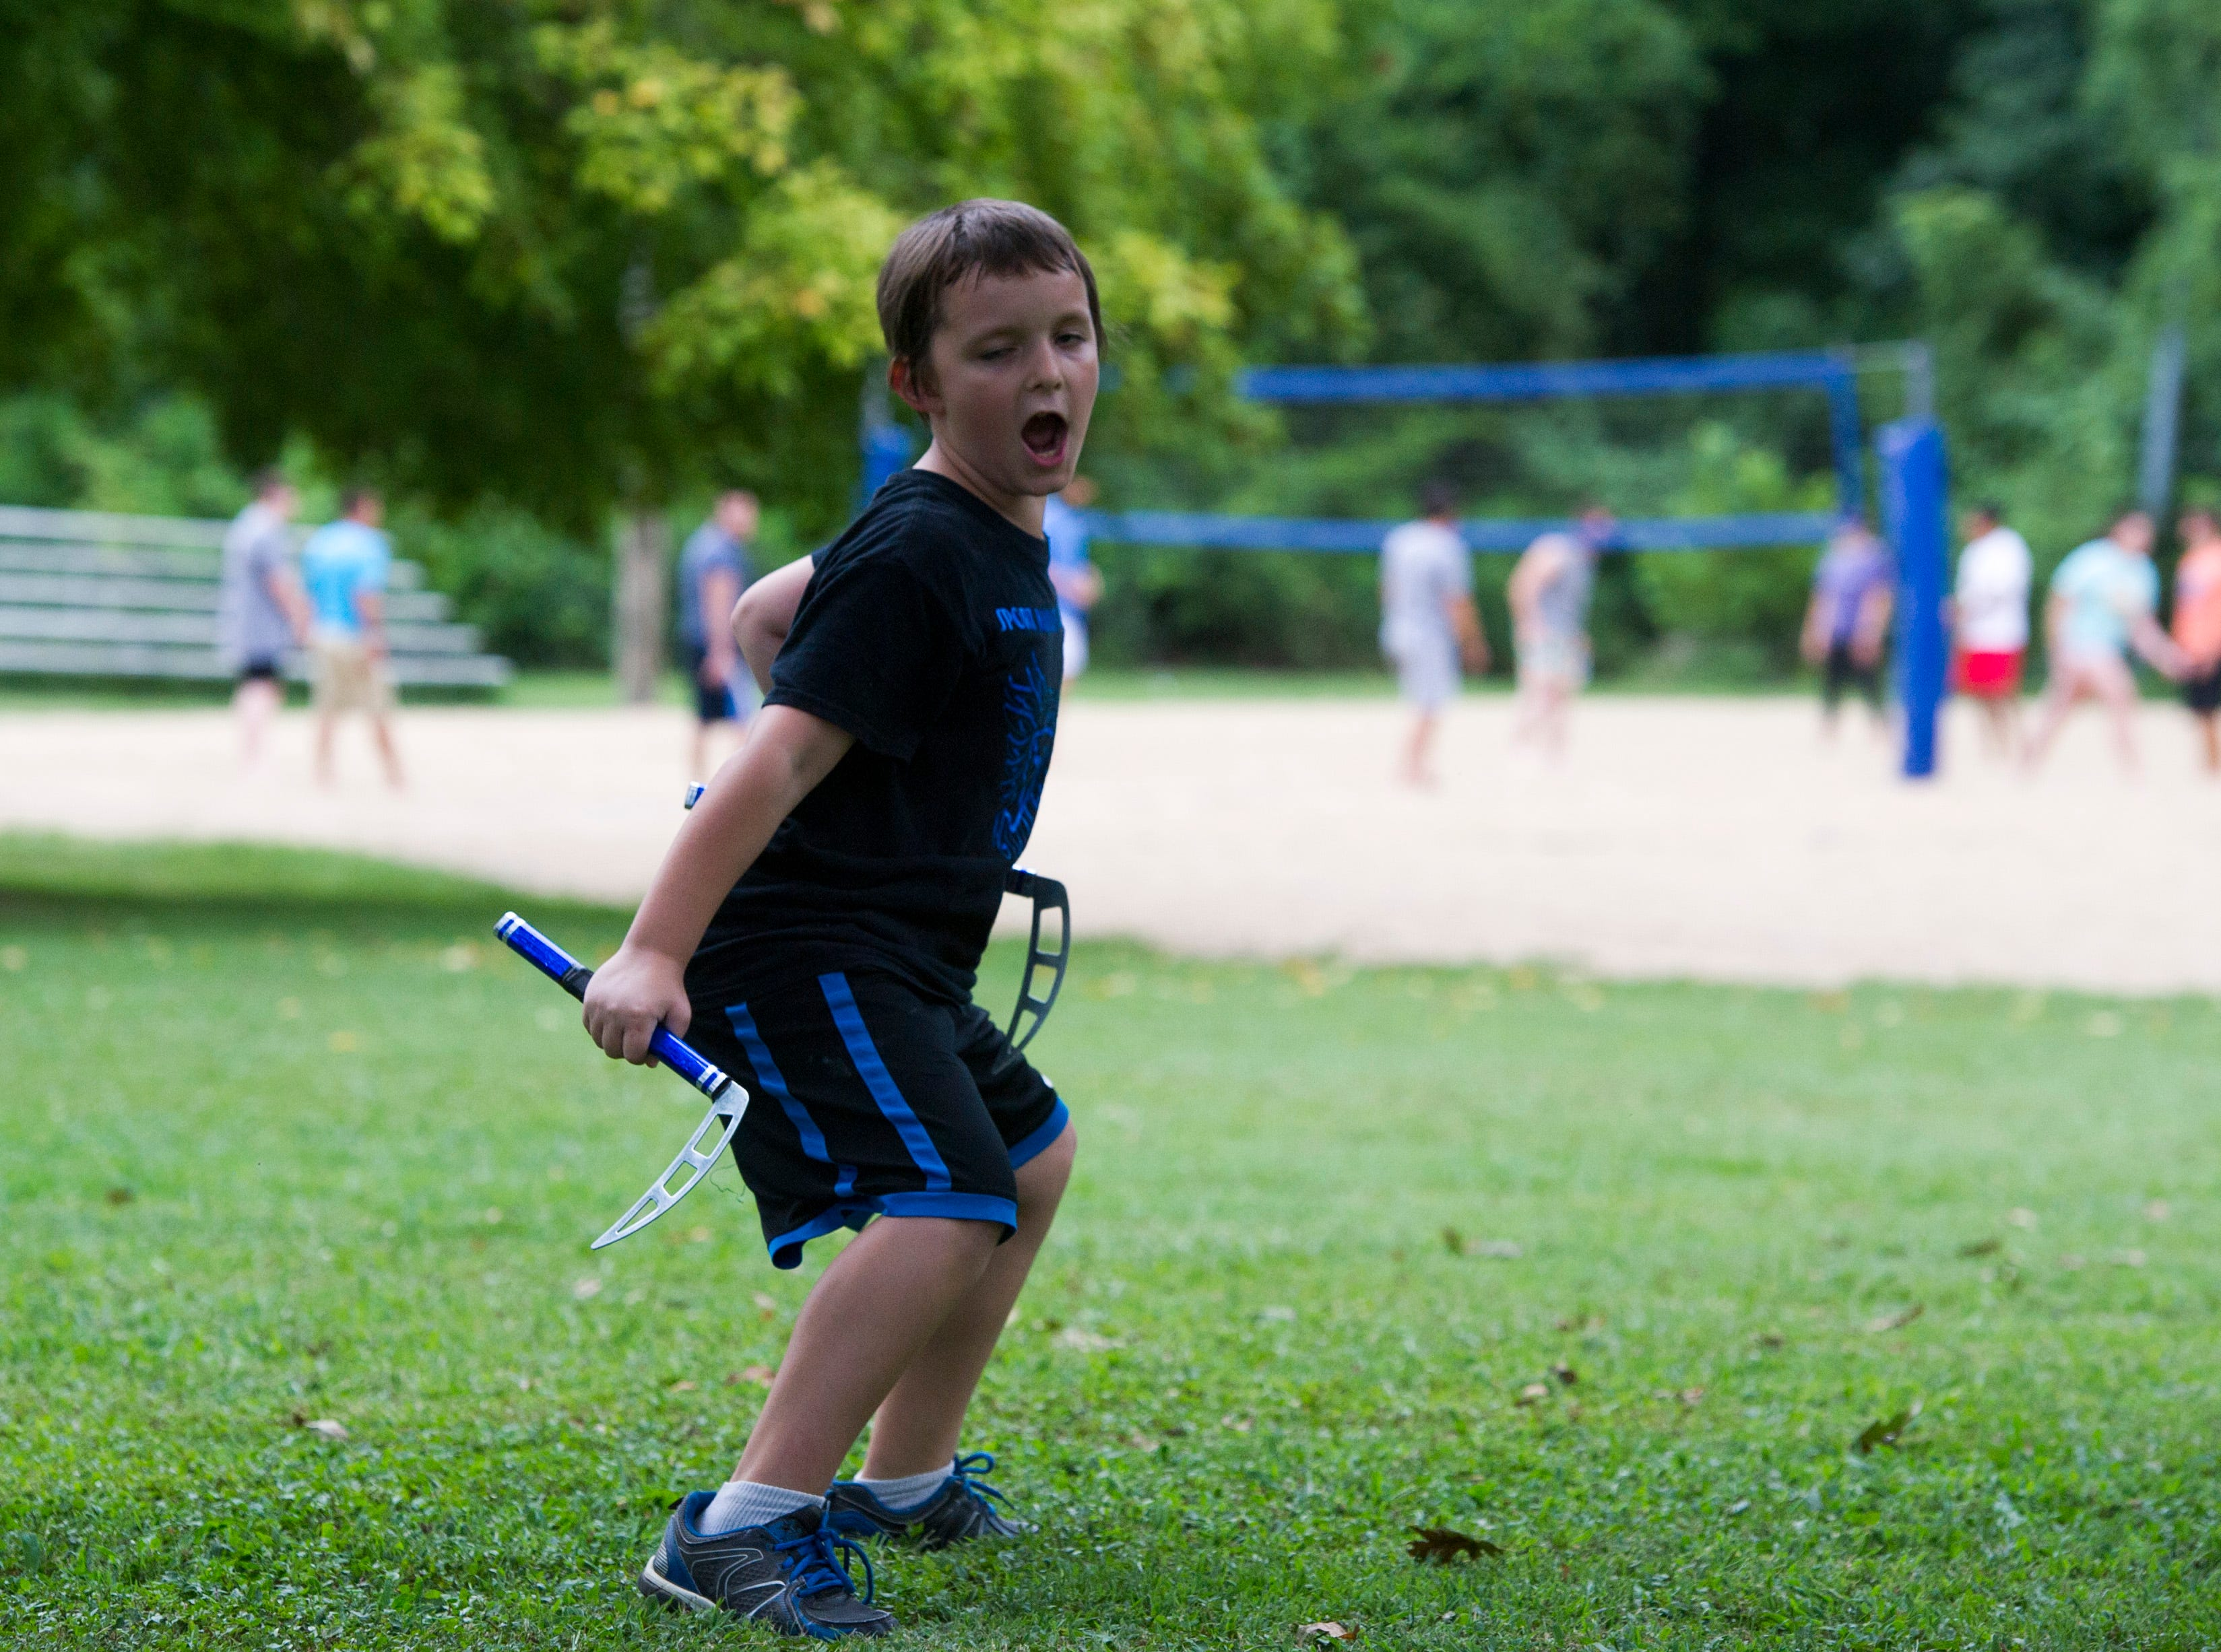 Wyatt Schutt shows off his kama skills during the 35th National Night Out held at Wesselman Park Tuesday, August 7, 2018.